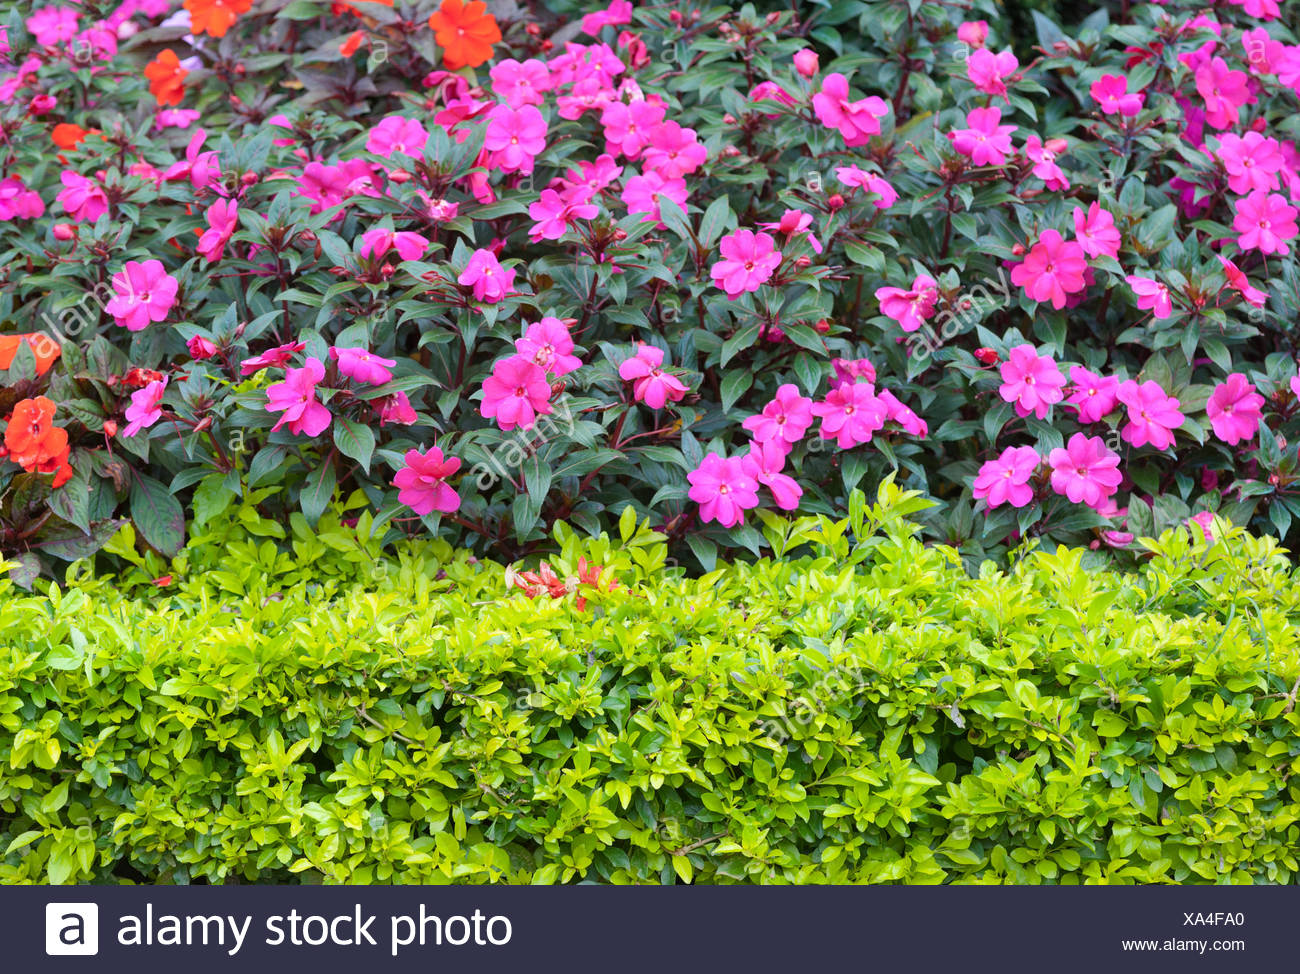 Bushes With Pink Flowers Stock Photo 281612296 Alamy